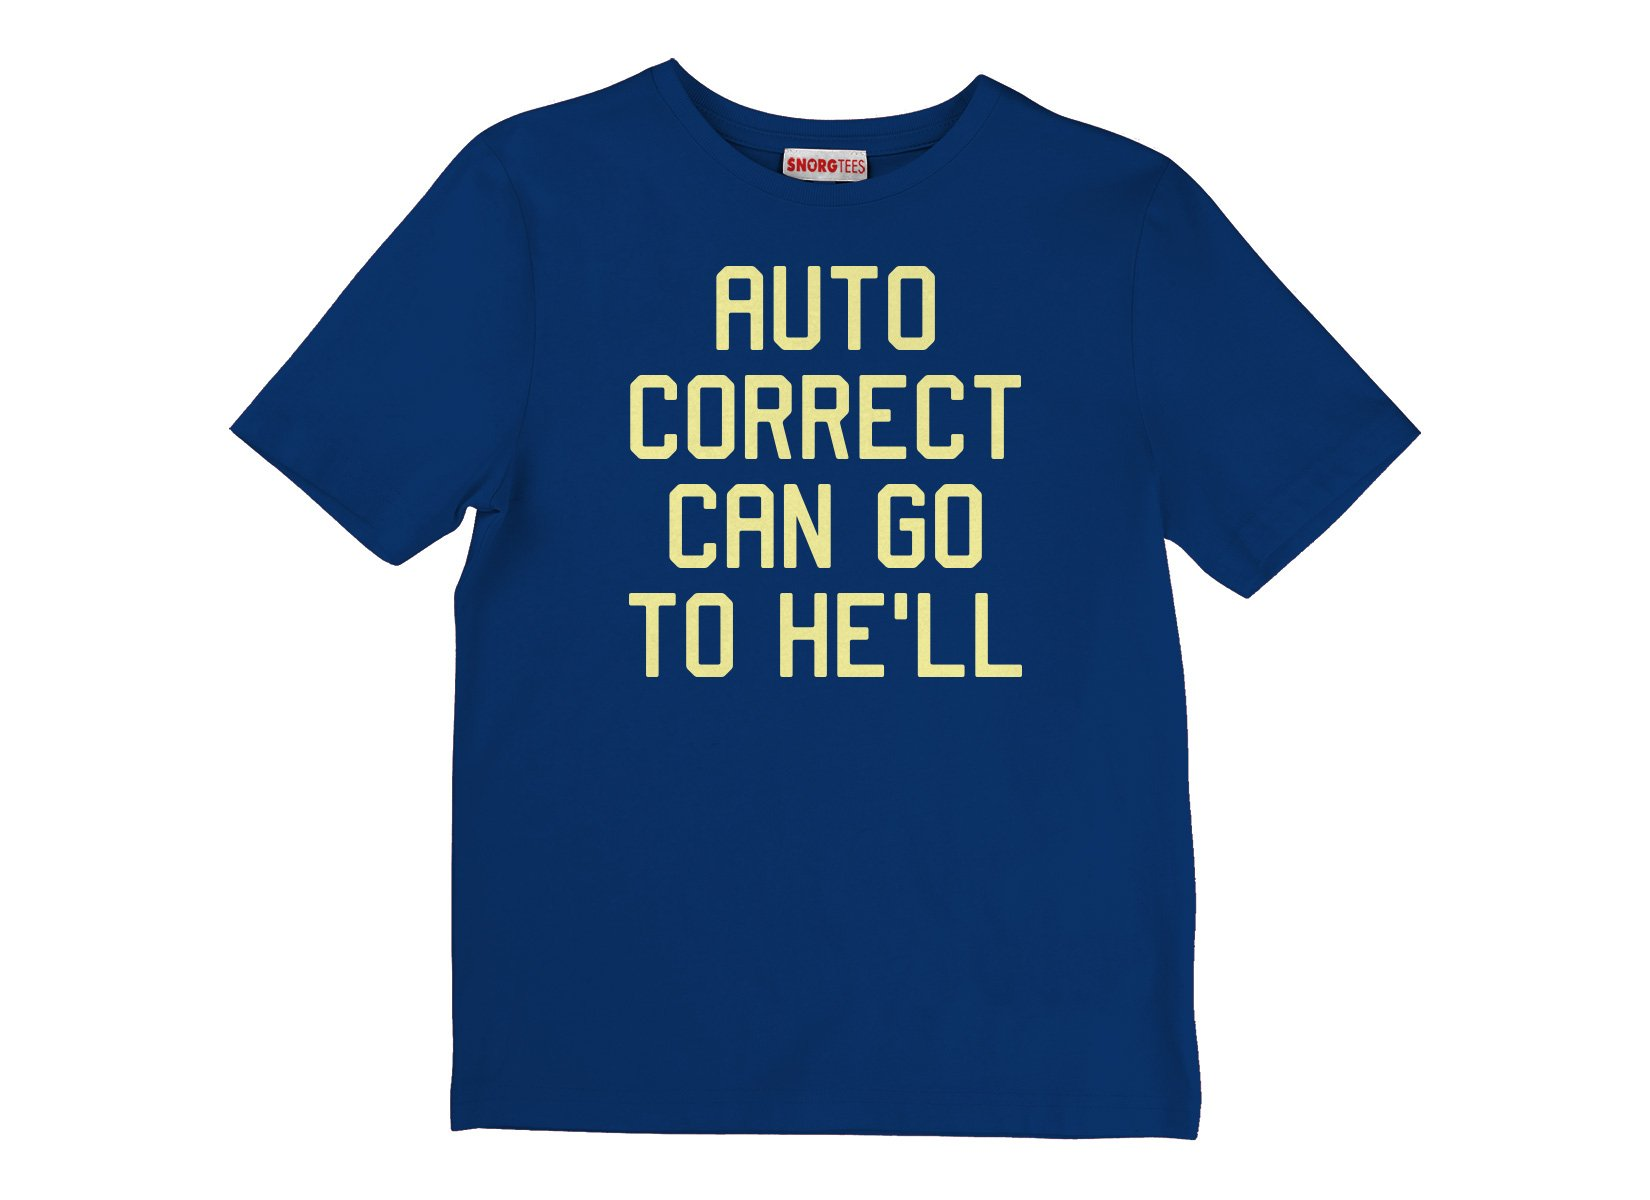 Auto Correct Can Go To He'll on Kids T-Shirt